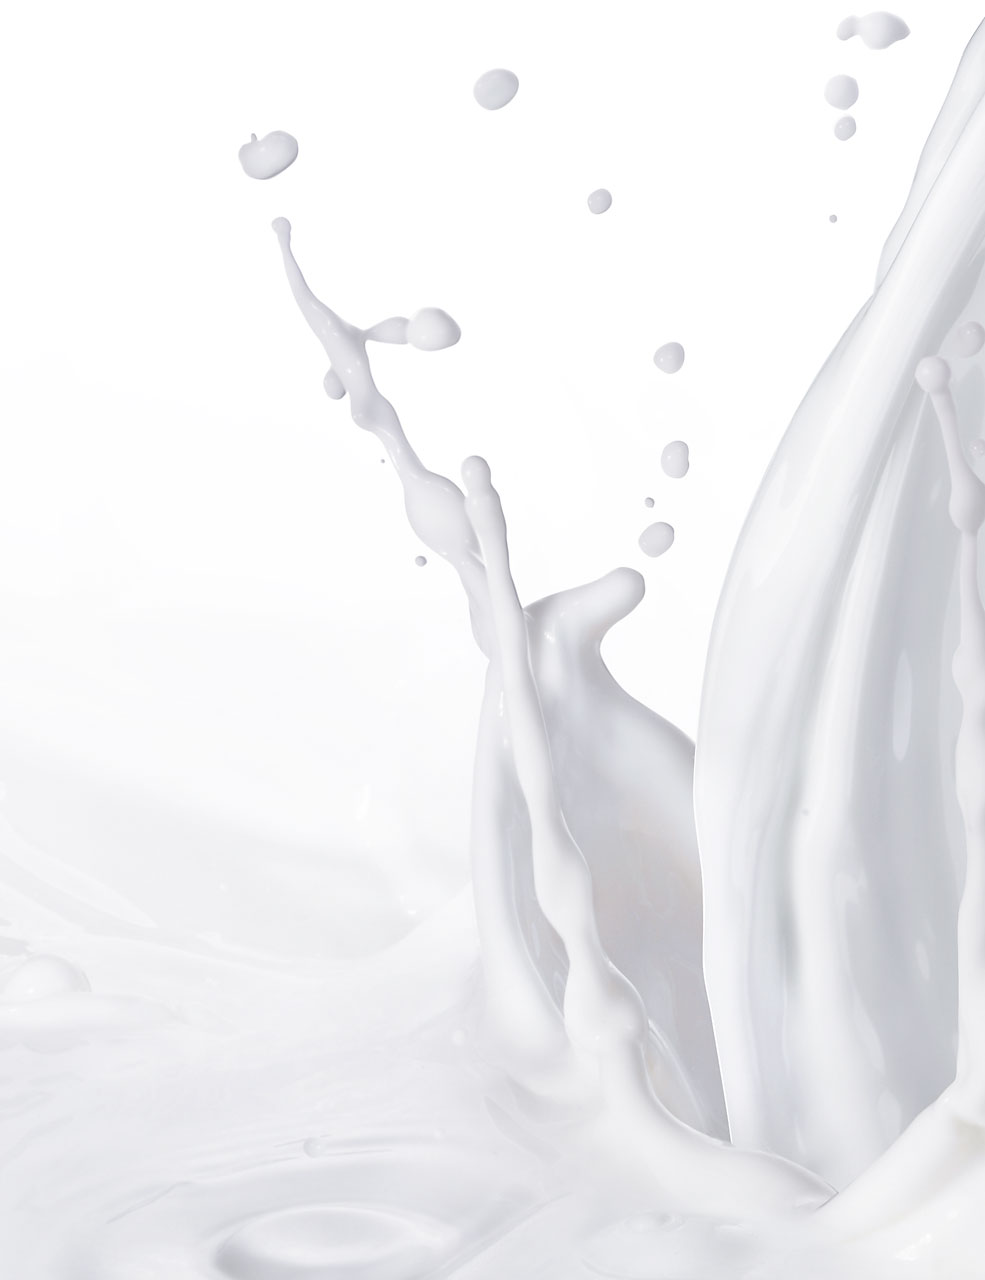 Sabine-Scheer-food-photography-milk-splash